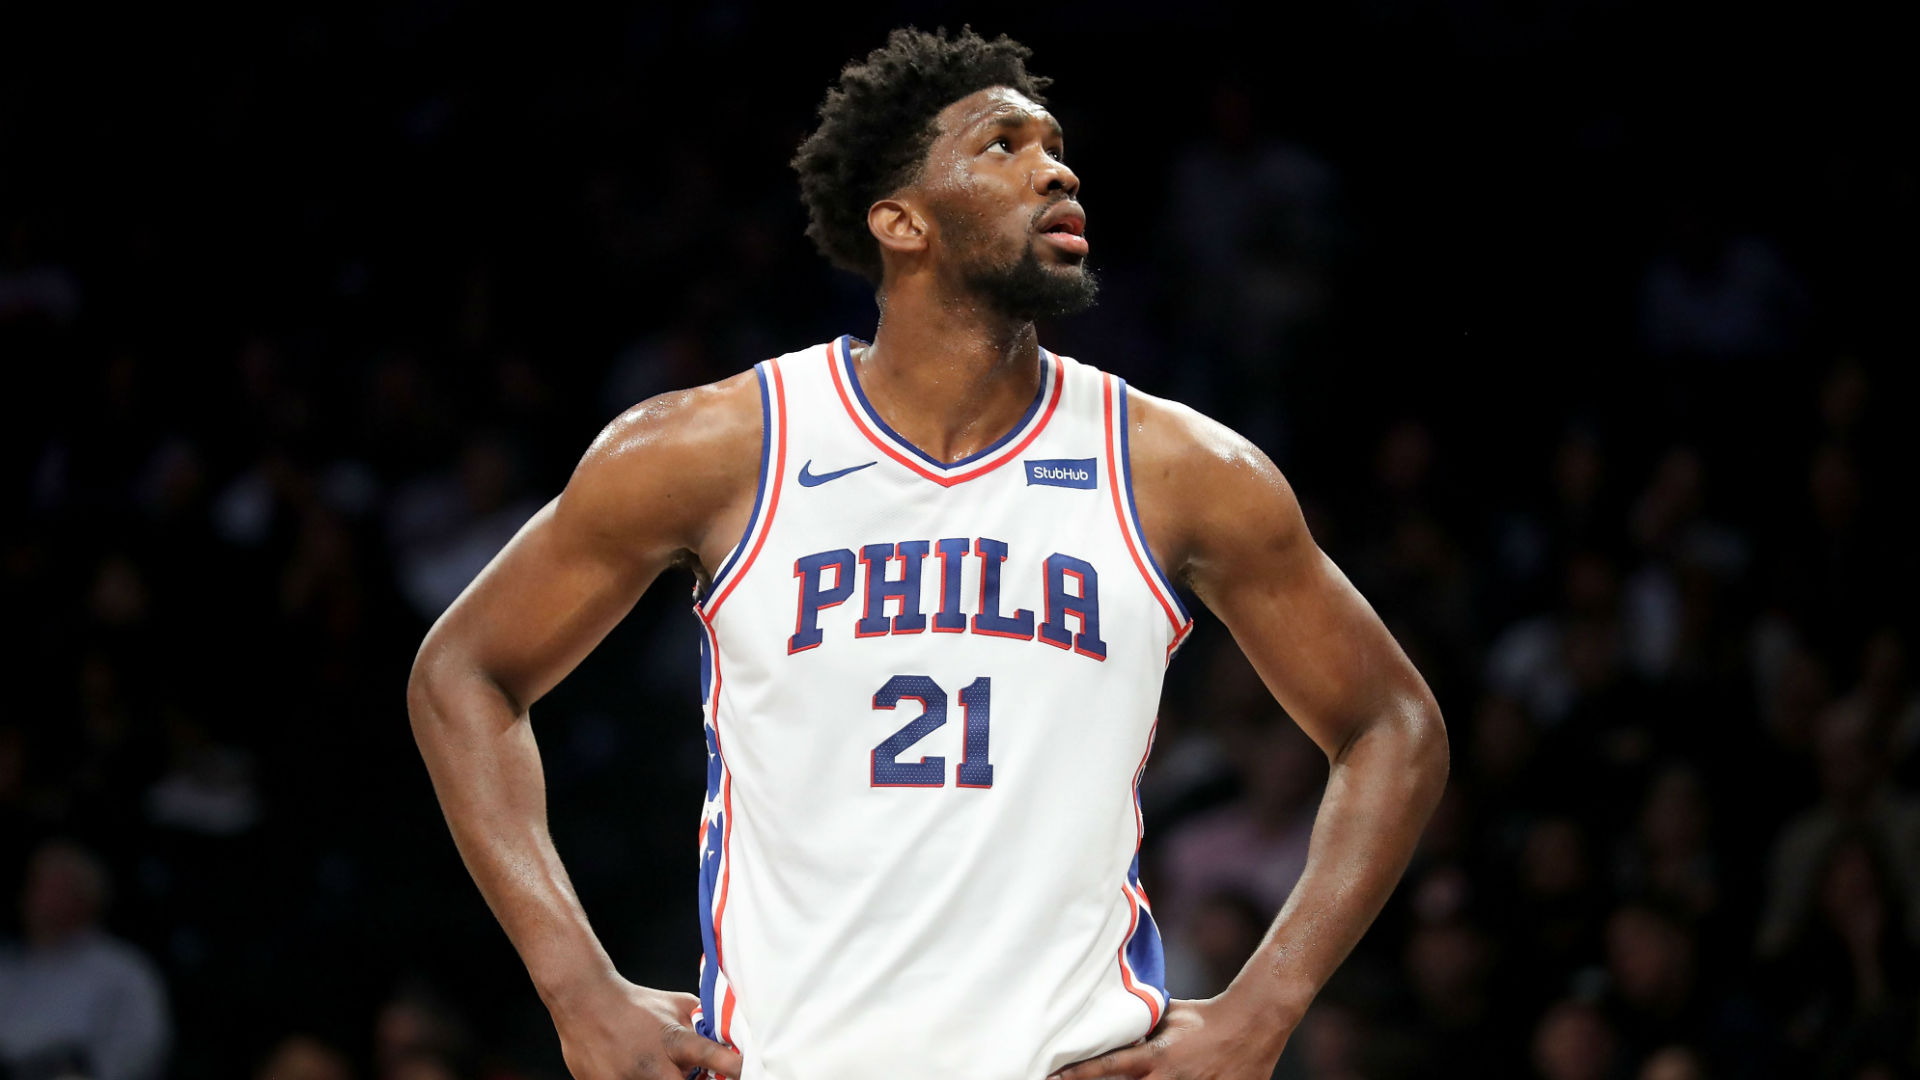 NBA playoffs 2019: Little girl's letter to Joel Embiid after seeing him cry goes viral